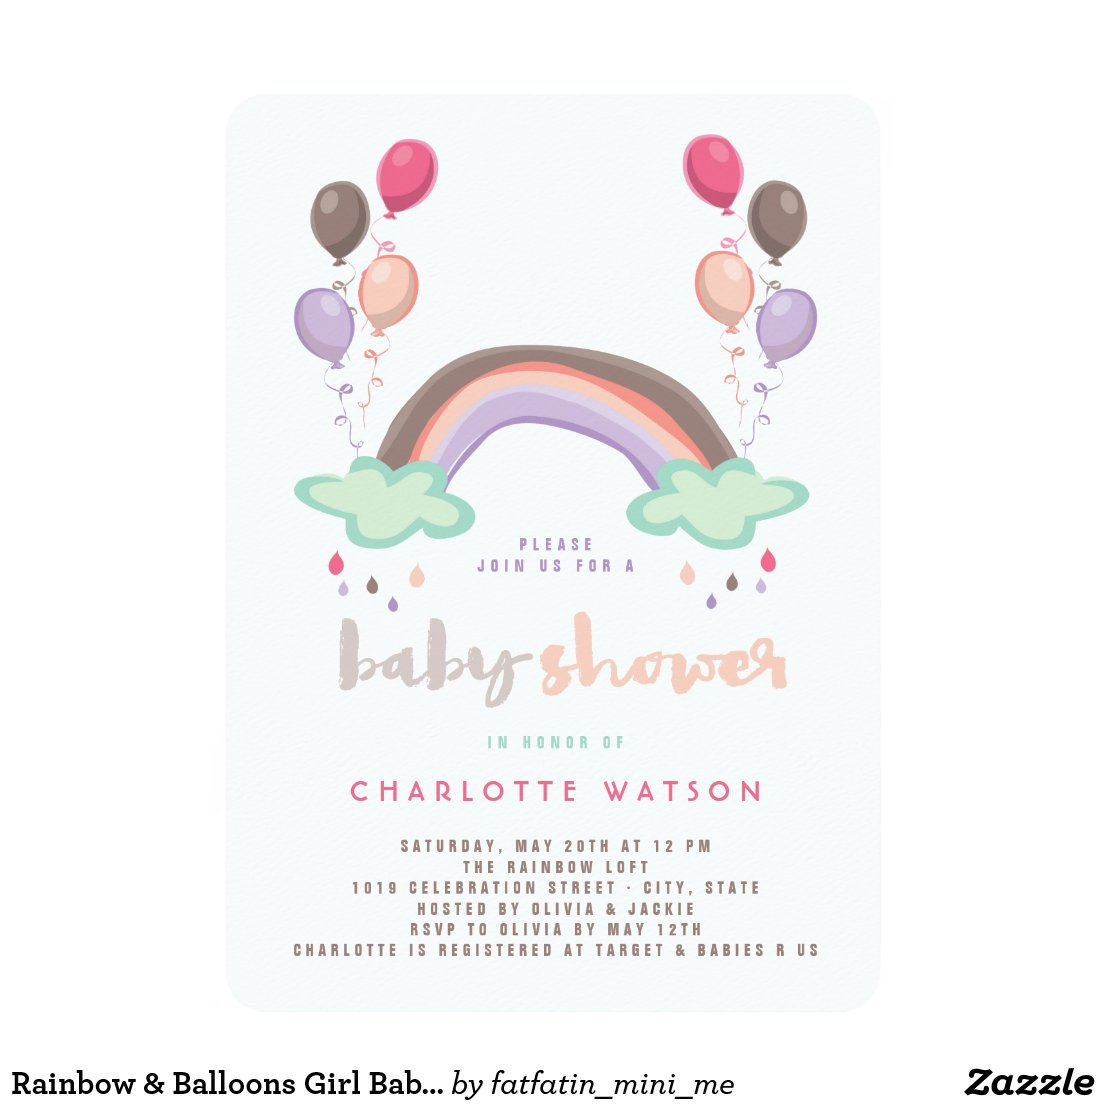 Rainbow & Balloons Girl Baby Shower Invitation